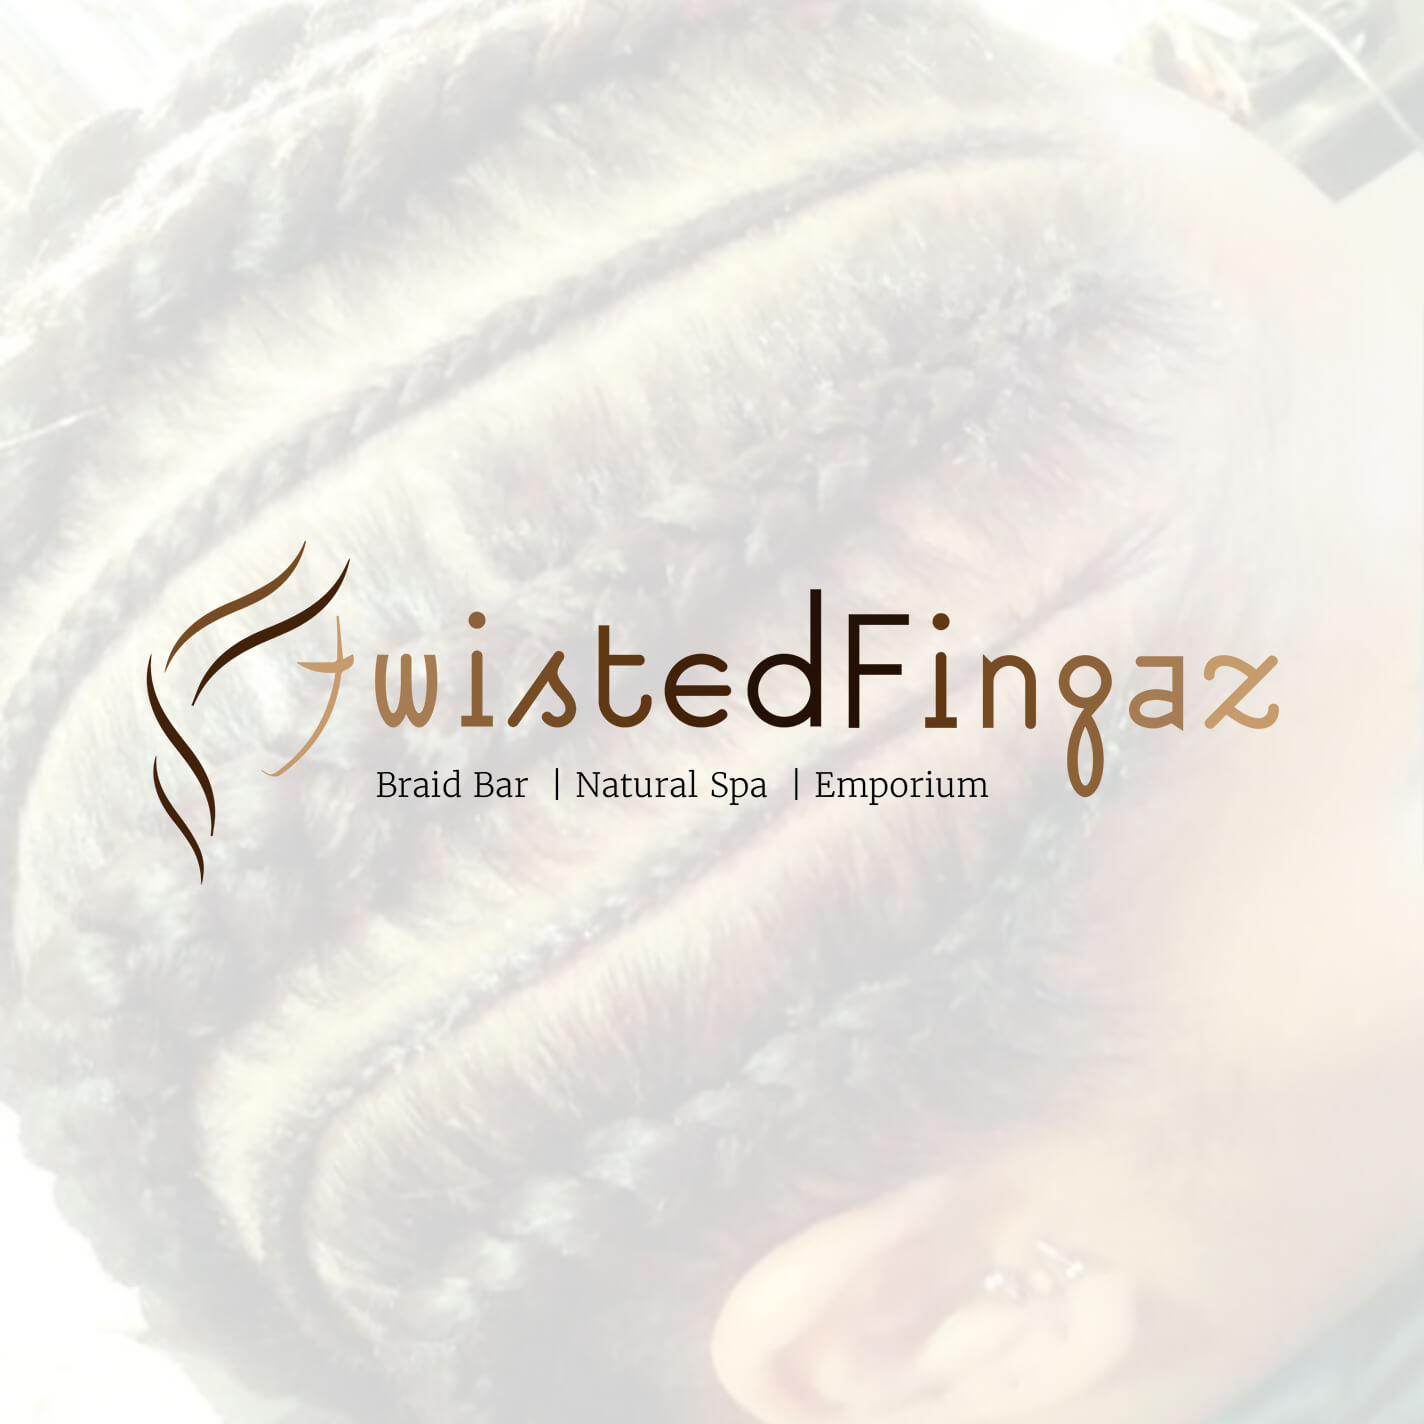 Twisted Fingaz Logo Development